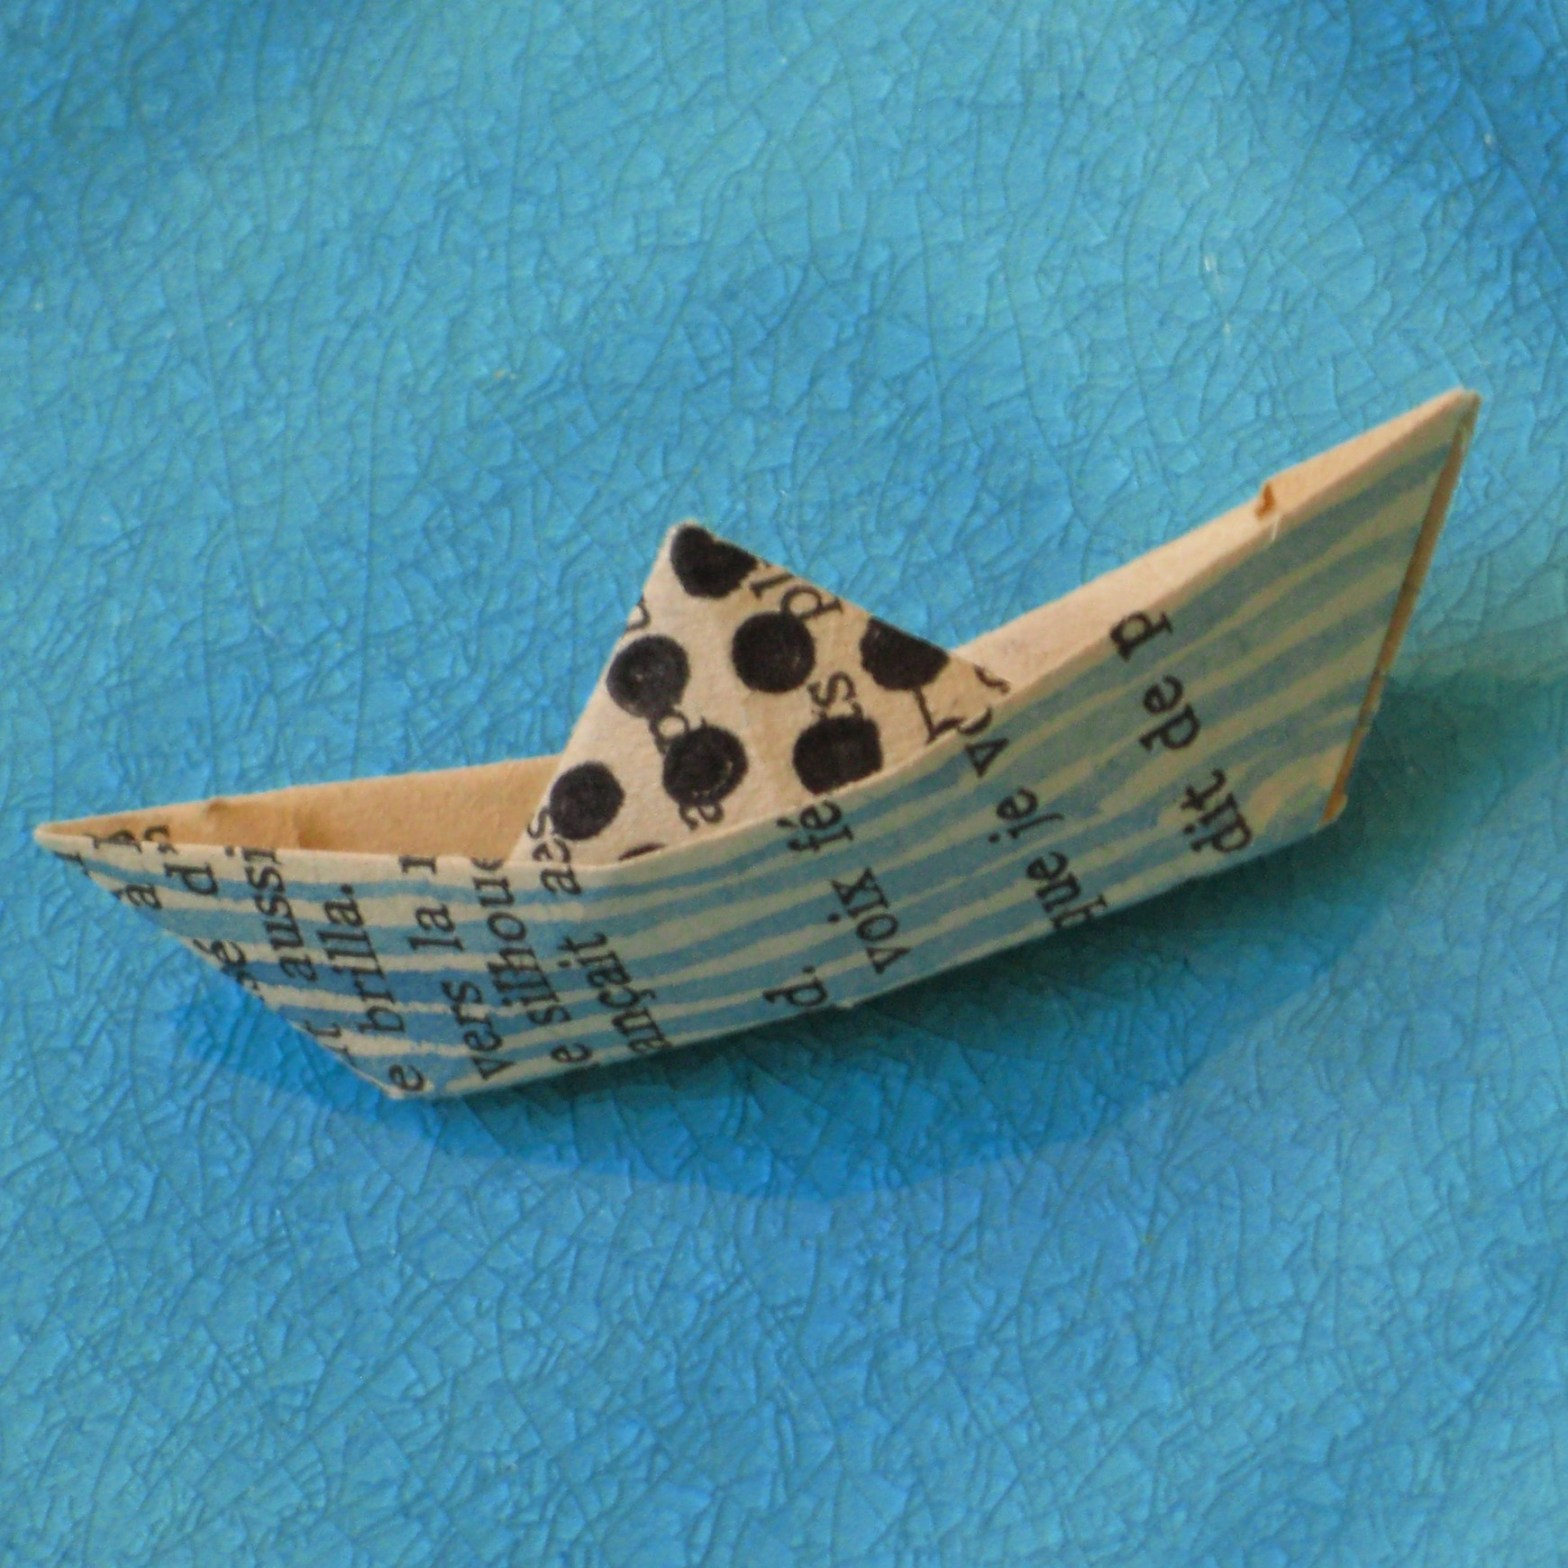 Origami boats made out of old books - art by Tine Steiss